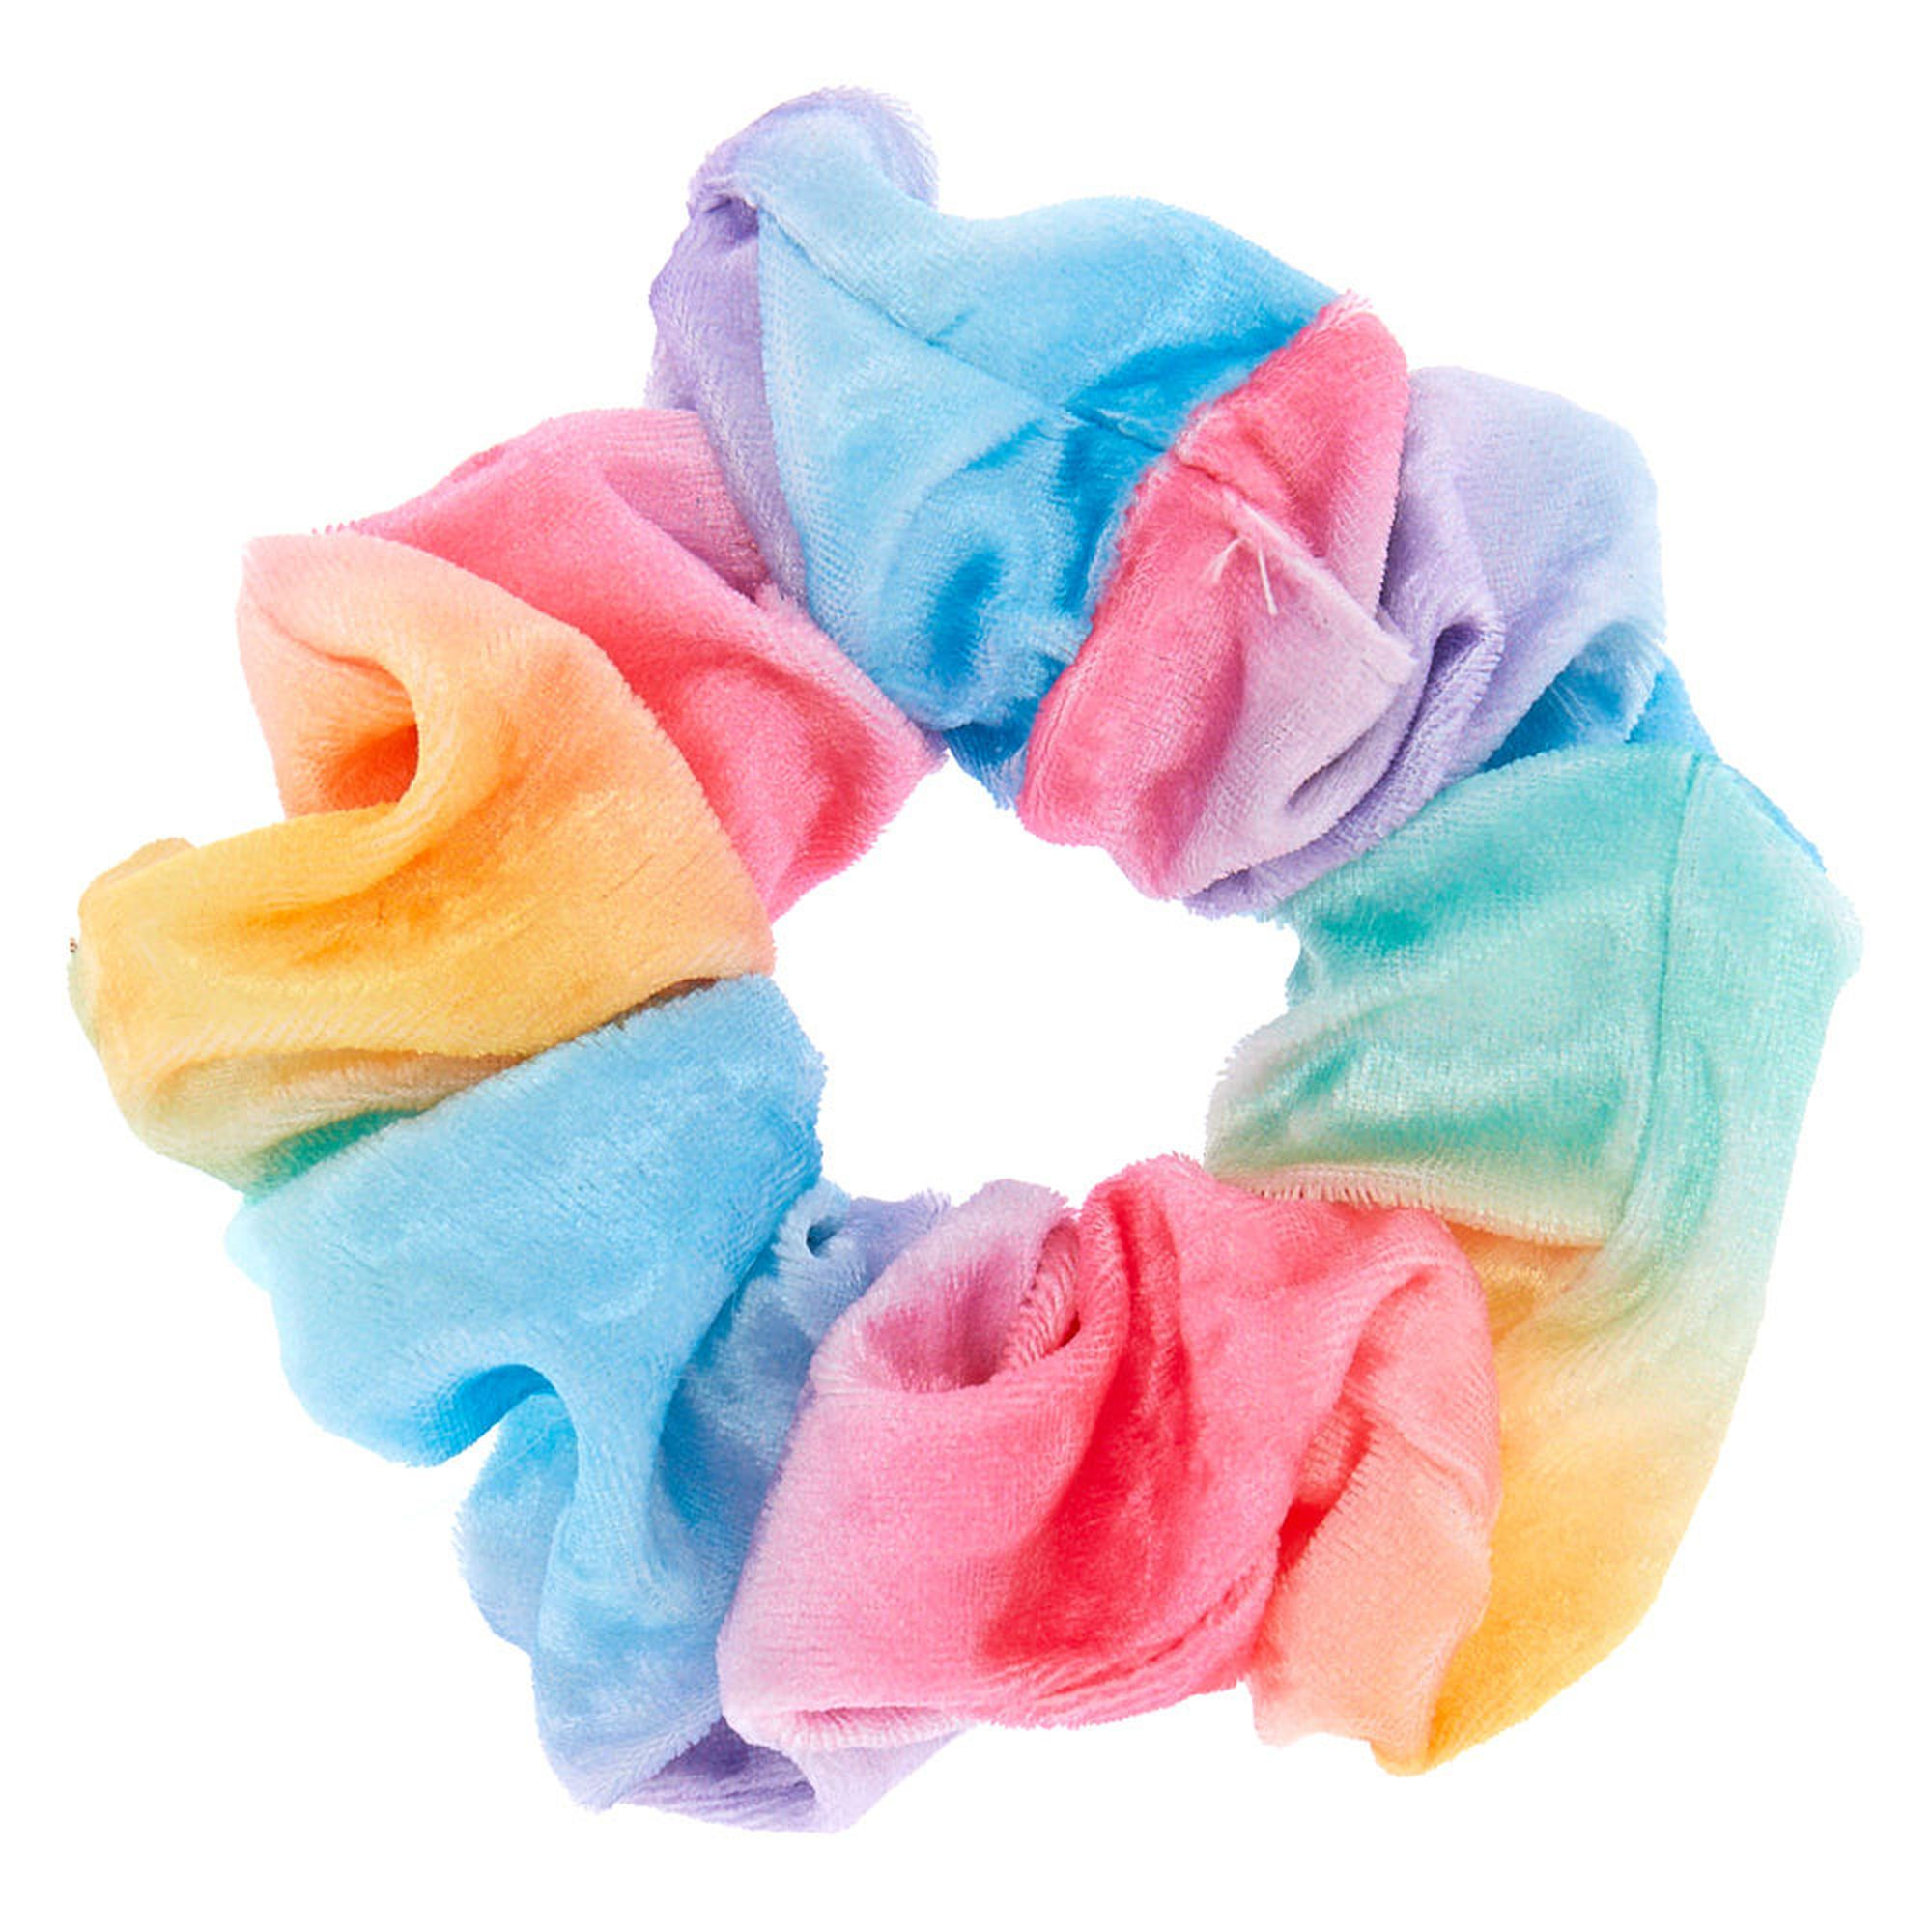 PACK OF 2 RAINBOW HAIR SCRUNCHIES SCRUNCHY TIES ACCESSORY SUMMER TIE BAND NEW